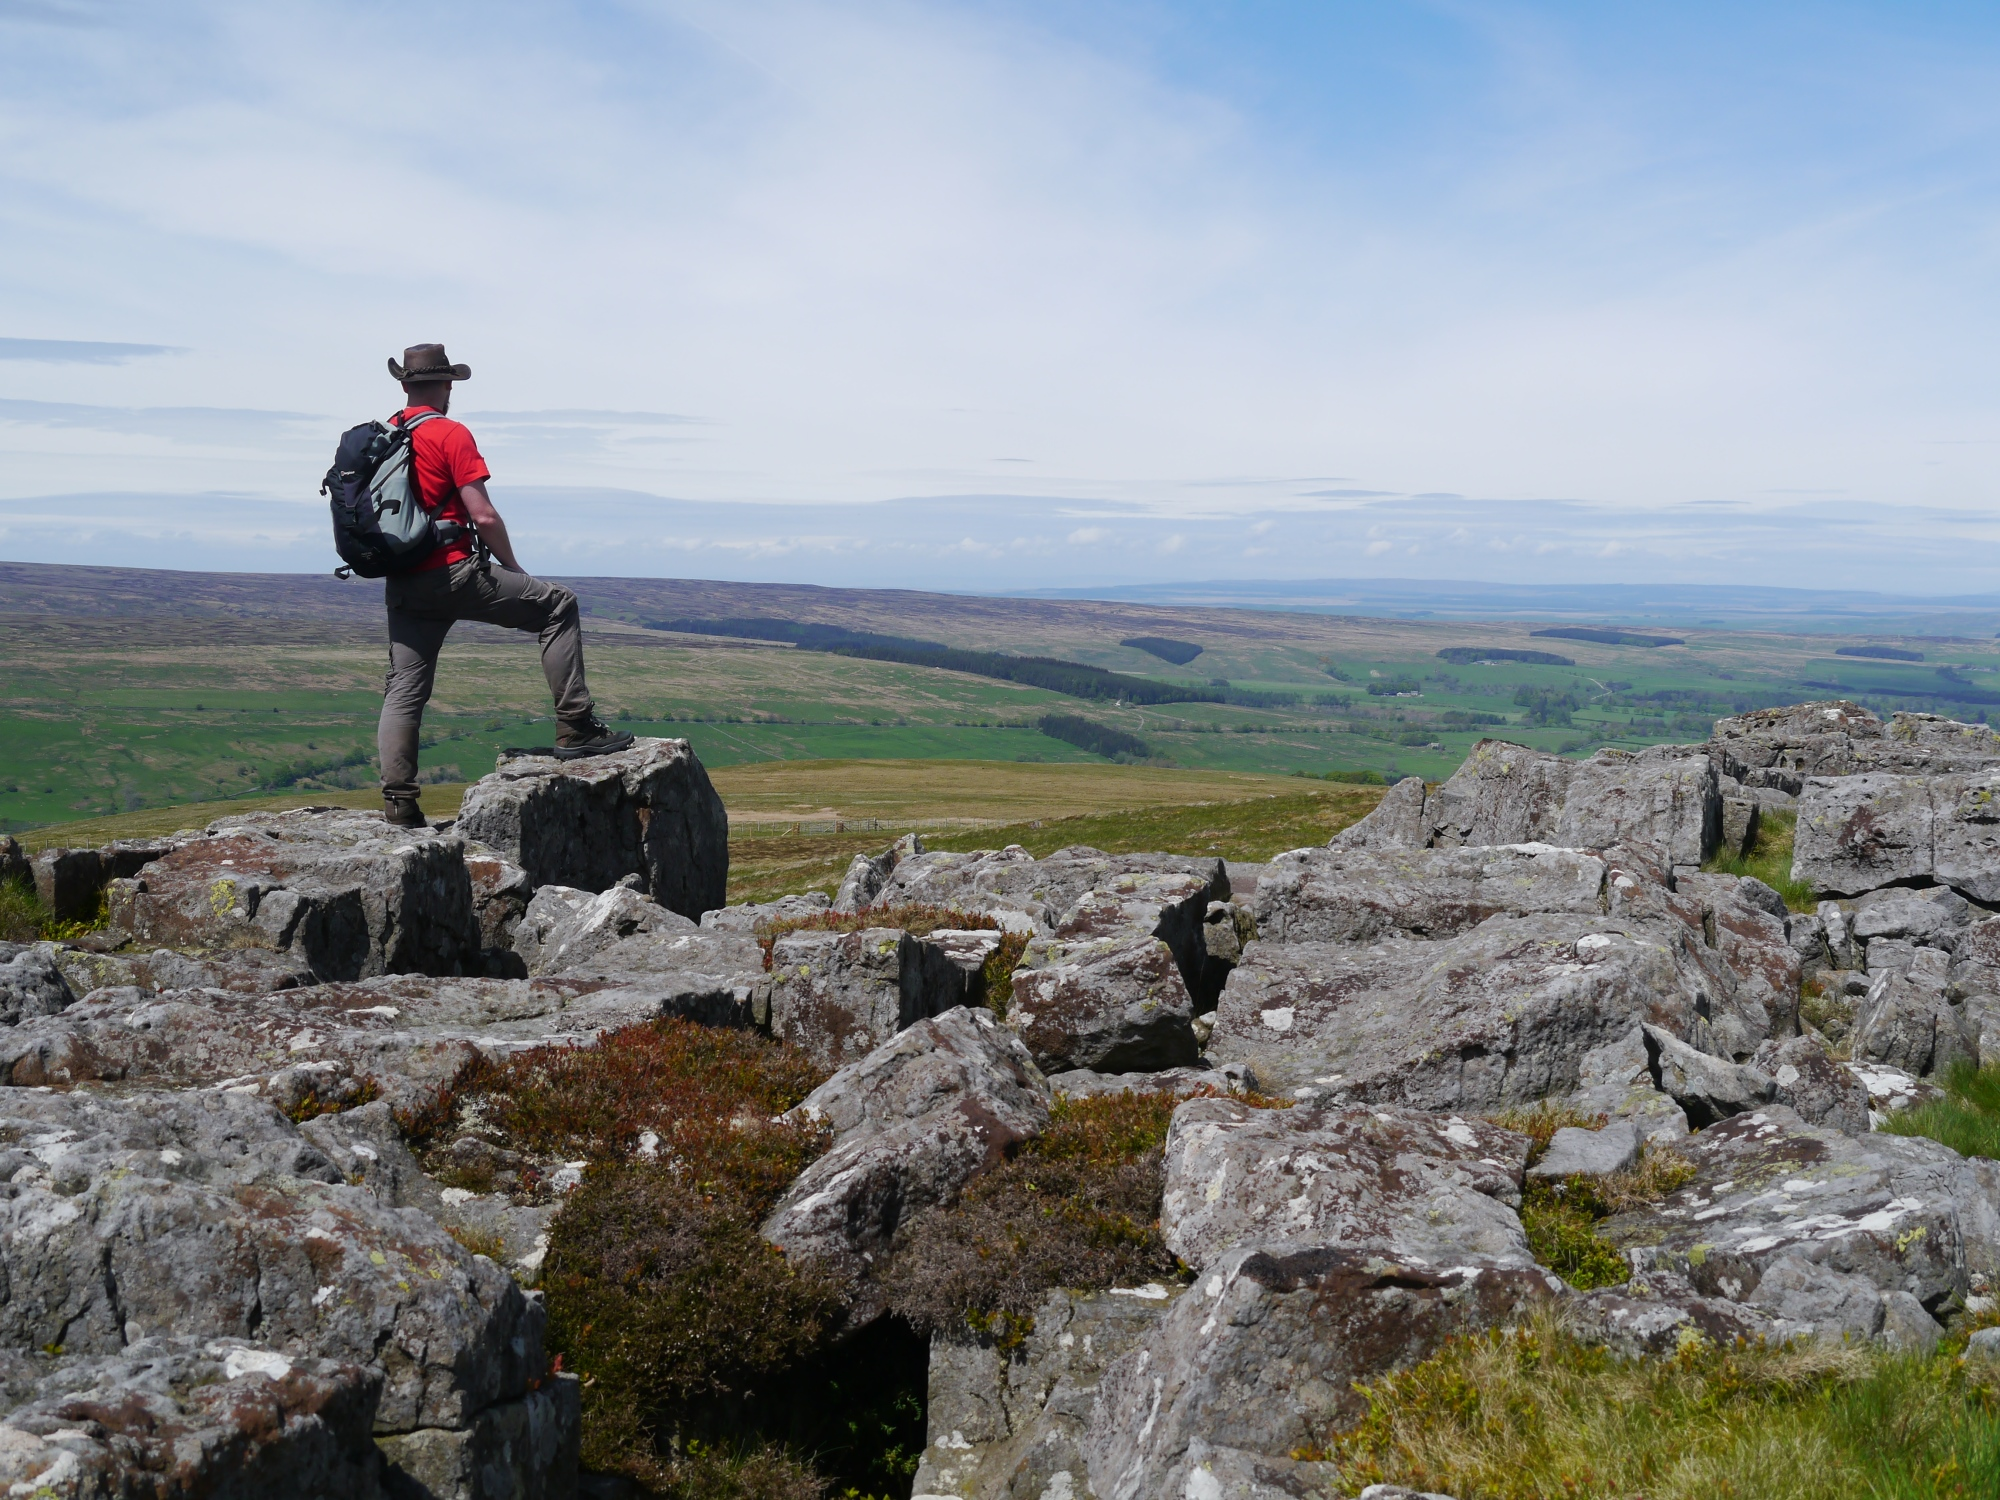 On Greenleycleugh Crags, Brownley Hill